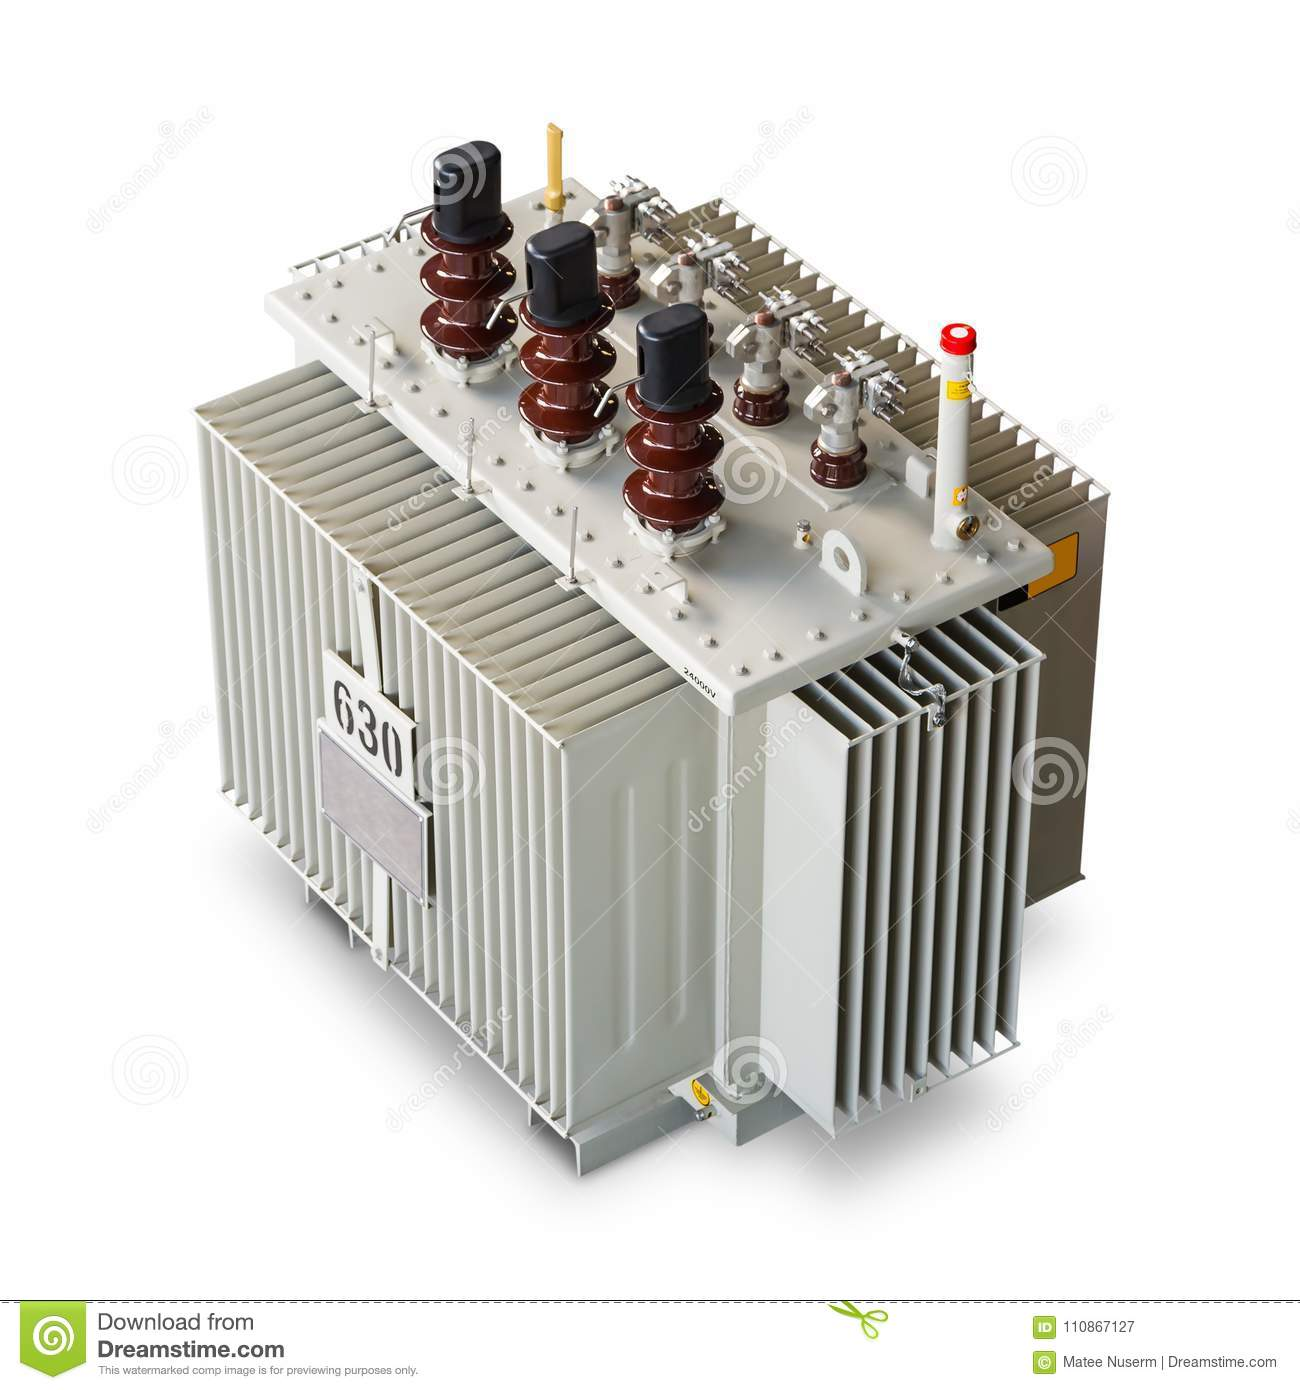 630 KVA Oil Immersed Transformer Stock Image - Image of